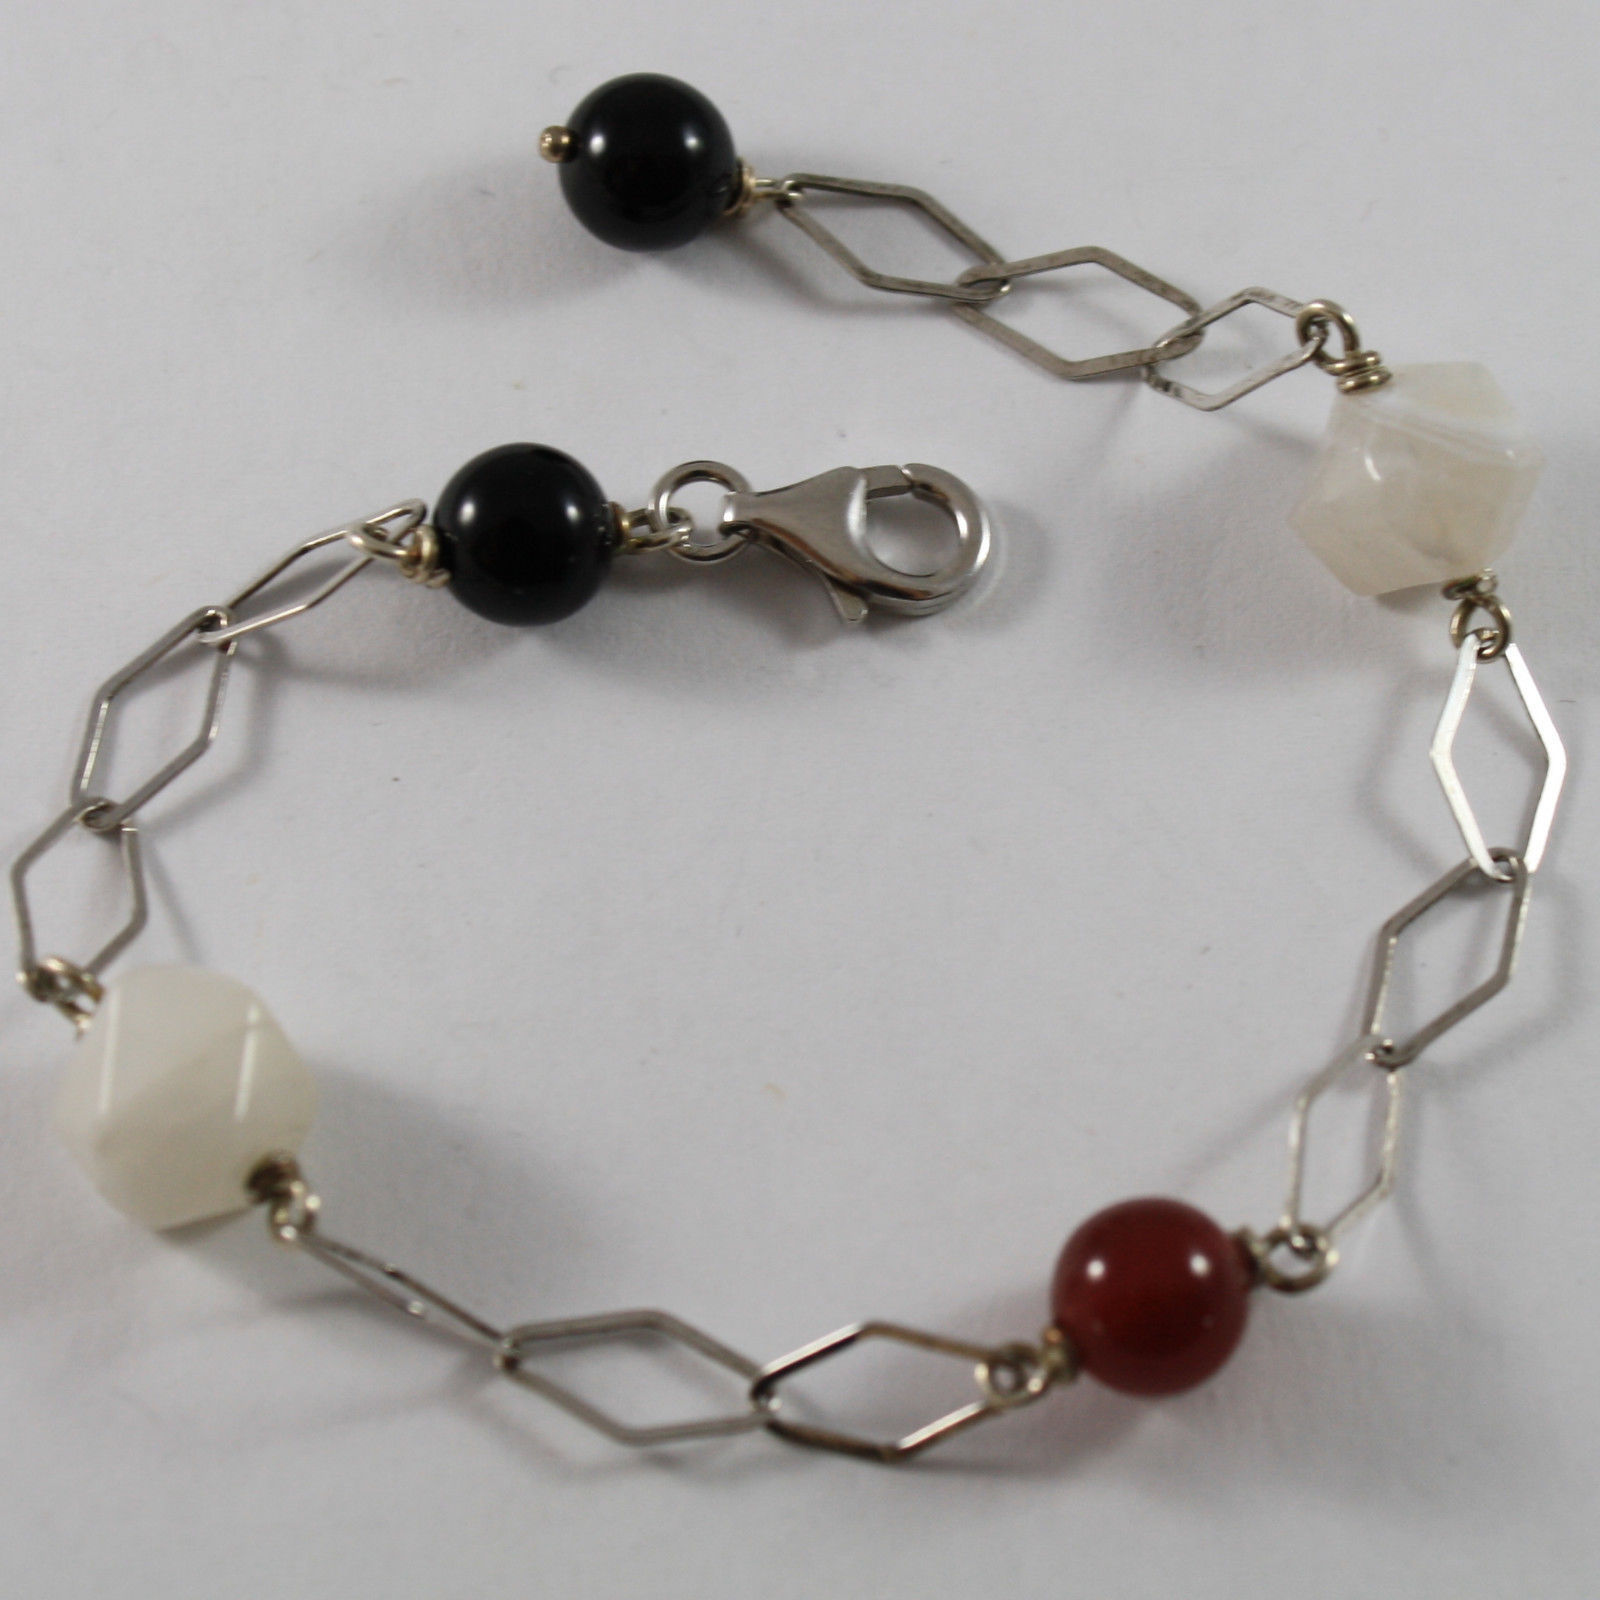 .925 RHODIUM SILVER BRACELET WITH BLACK ONYX, WHITE QUARTZ AND RED CARNELIAN